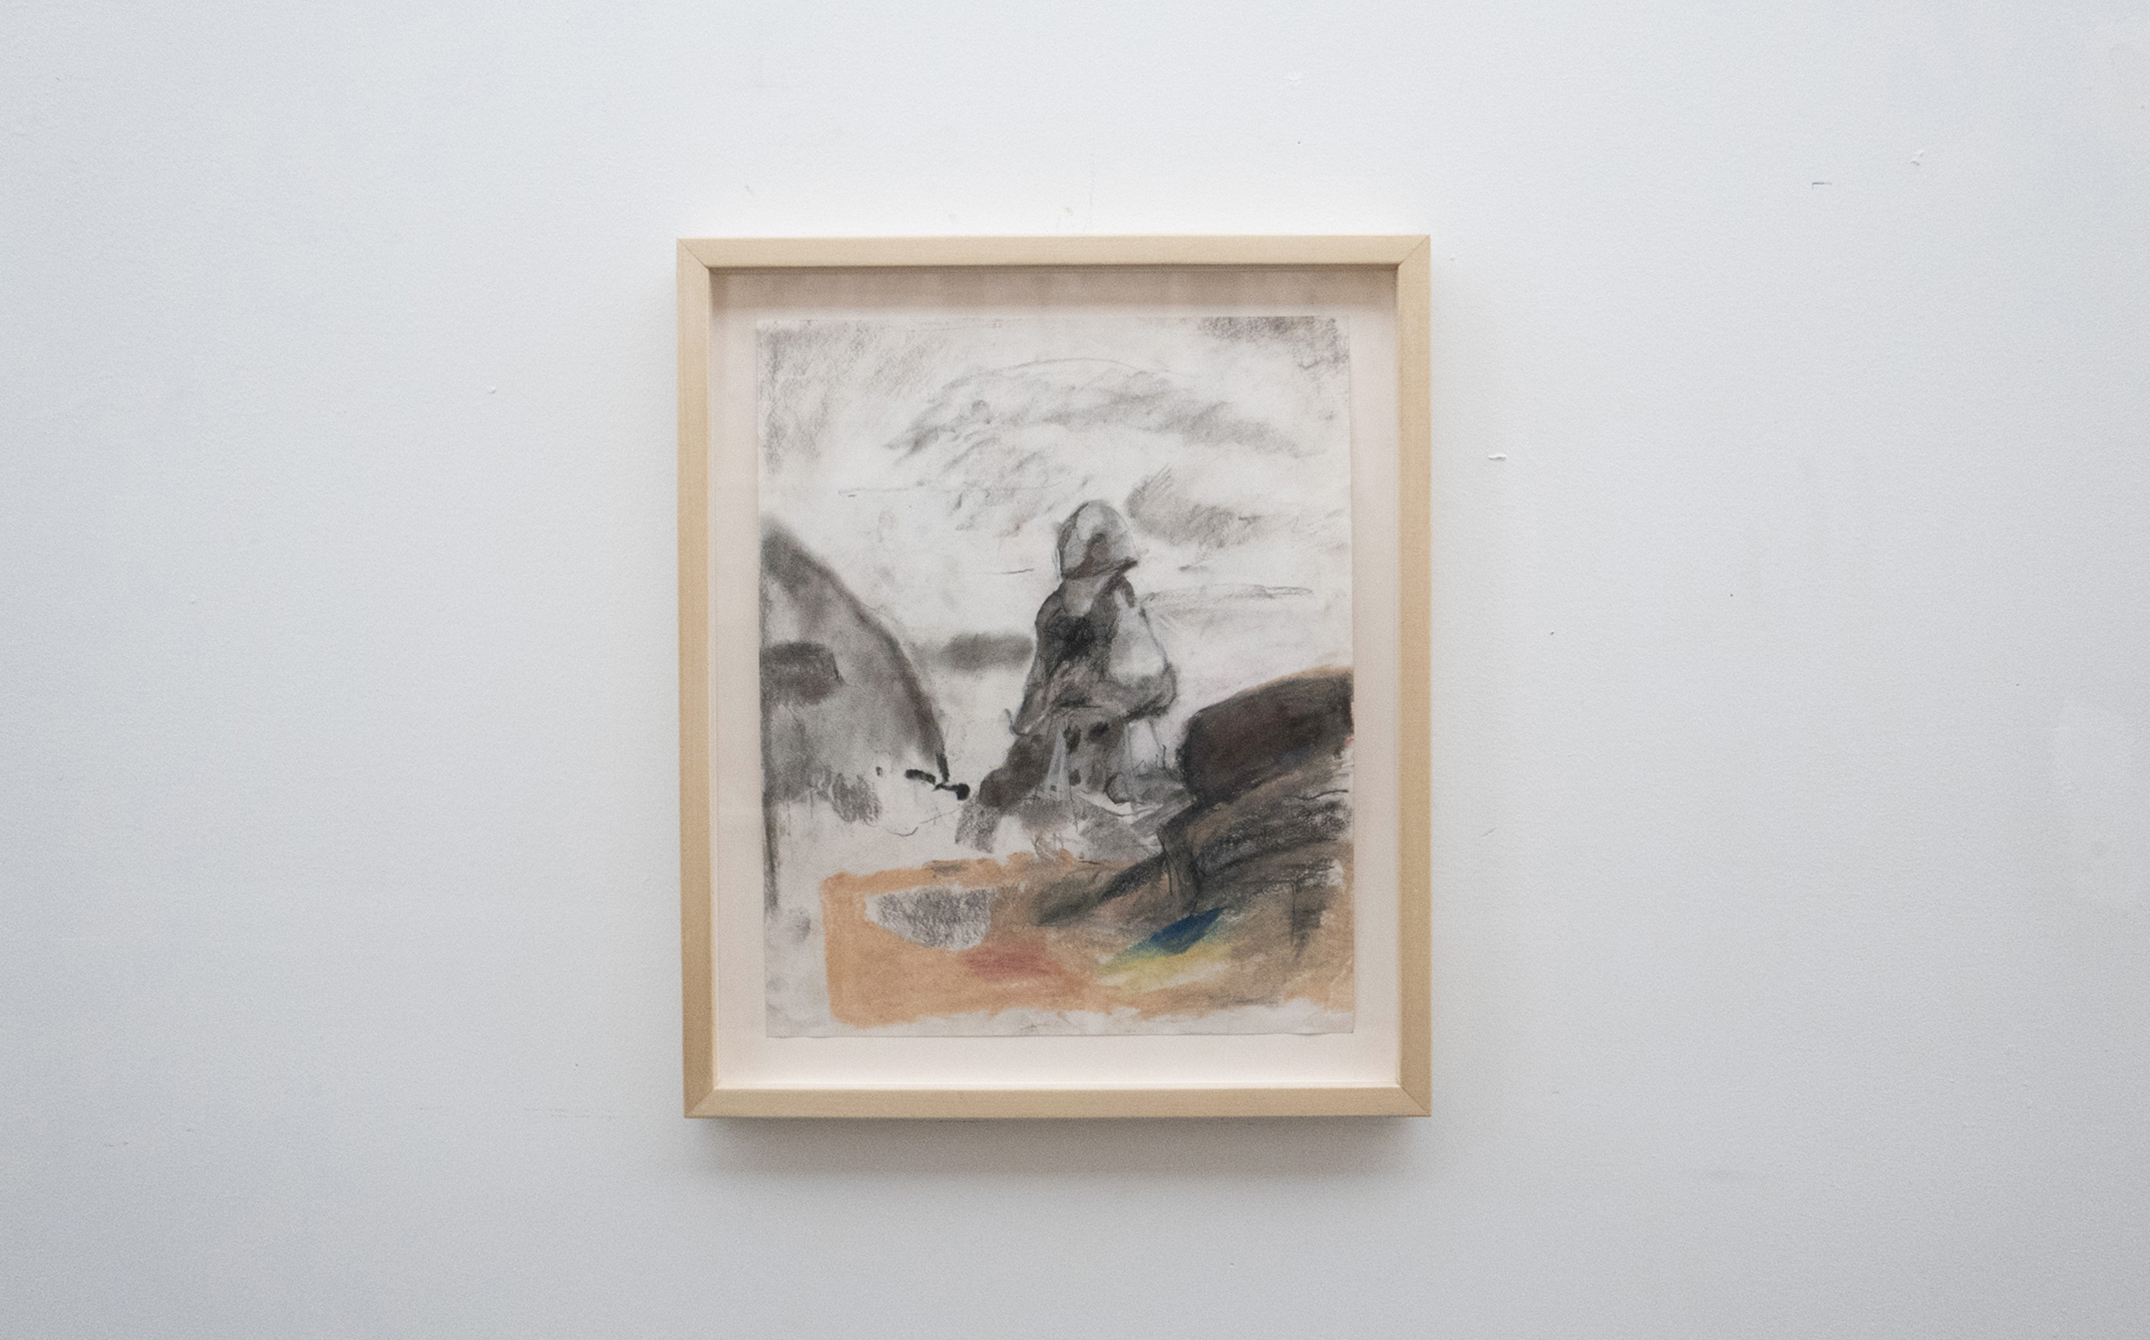 Jenny Gagalka, Beaux Mendes, William Wasserman,  Rock Sitter 4,  2018, pastel on paper, artist's frame, 20.5 × 17.5 in